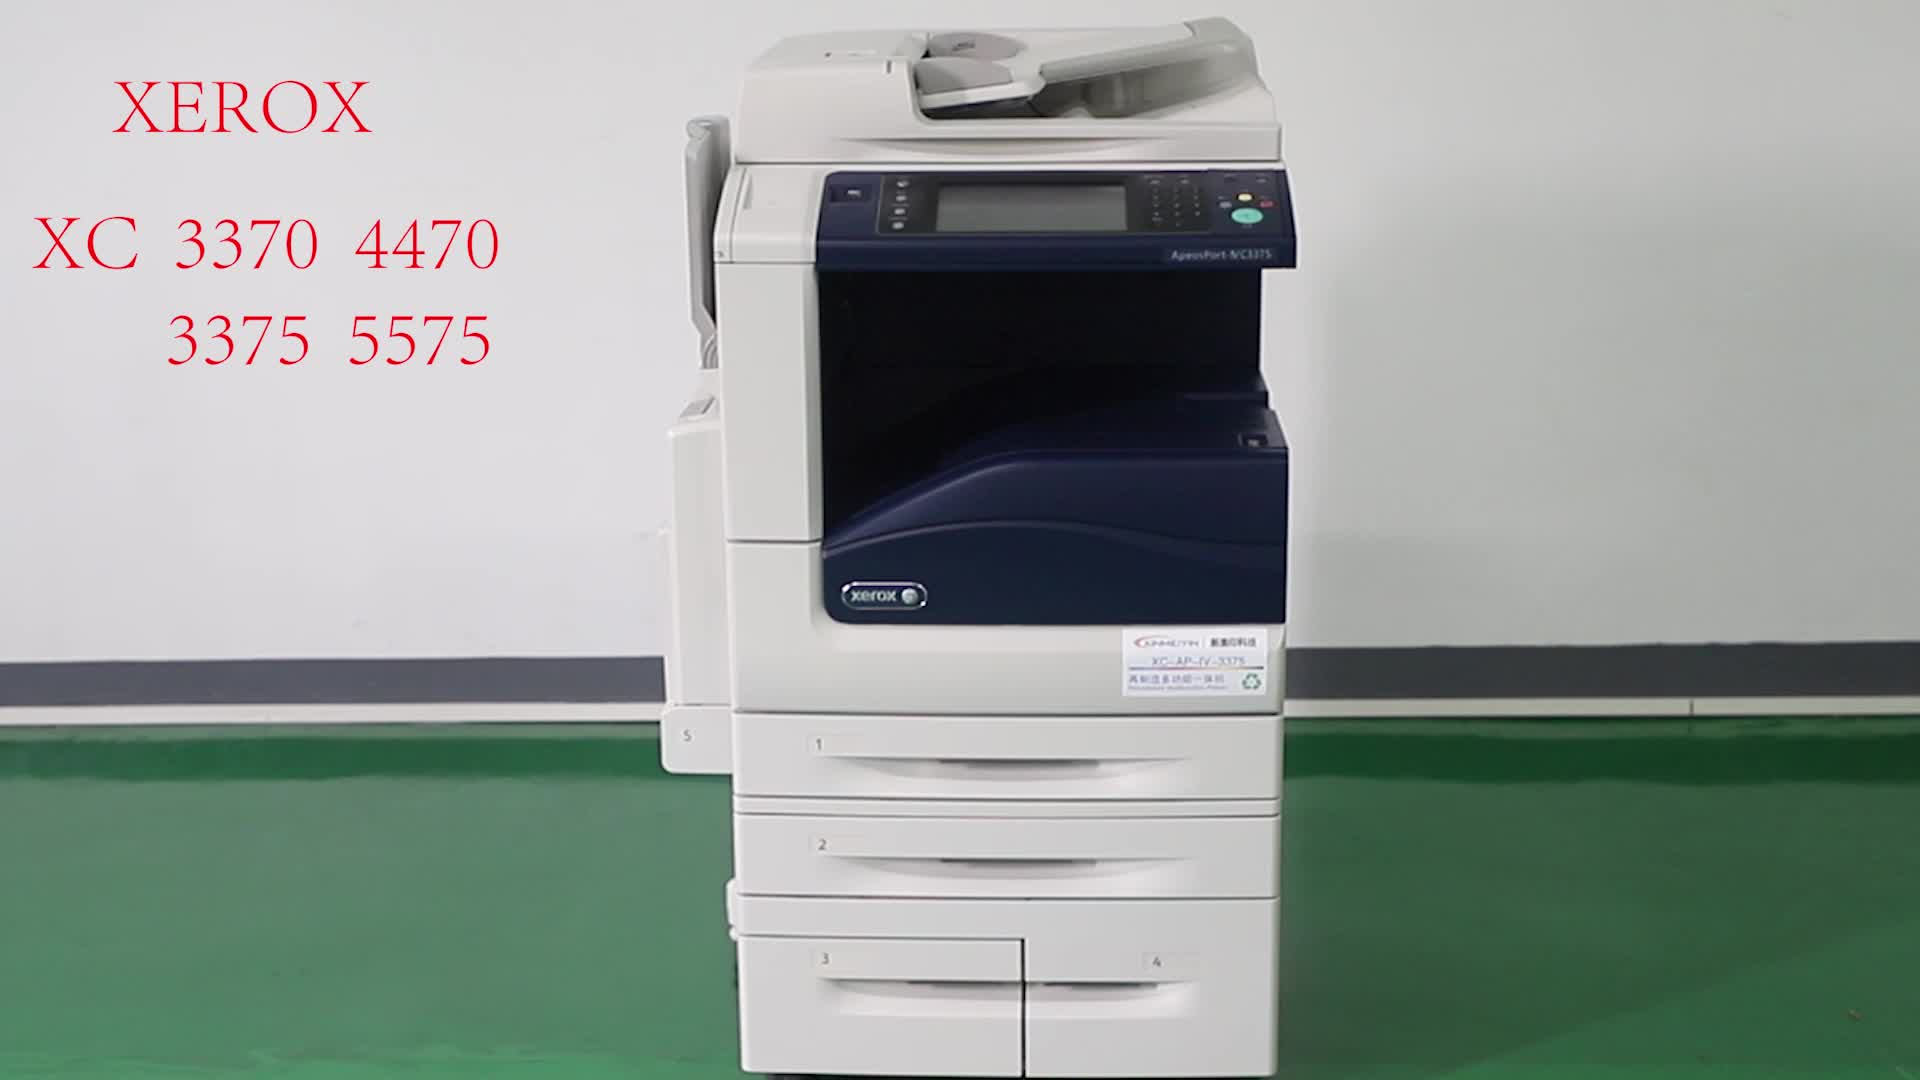 Seconde main imprimante laser Xerox3370 IV3370 Copieurs imprimantes Copieurs D'occasion Machine photocopieur